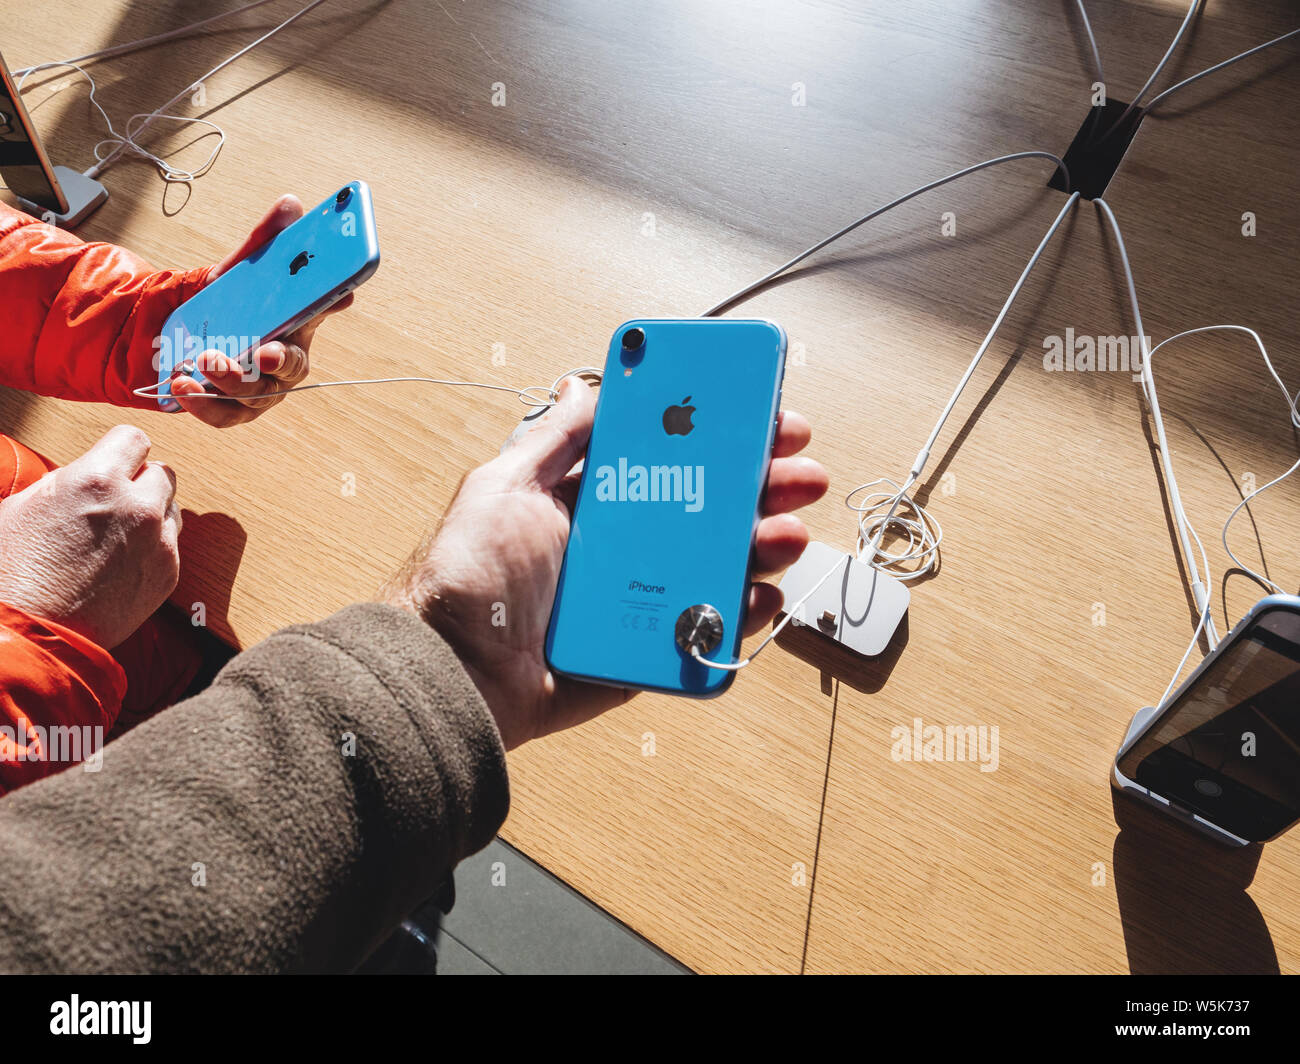 Paris, France - Oct 26, 2018: Man and woman hand holding two latest blue with silver logotype iPhone XR smartphone during launch day manufactured by Apple Computers Stock Photo